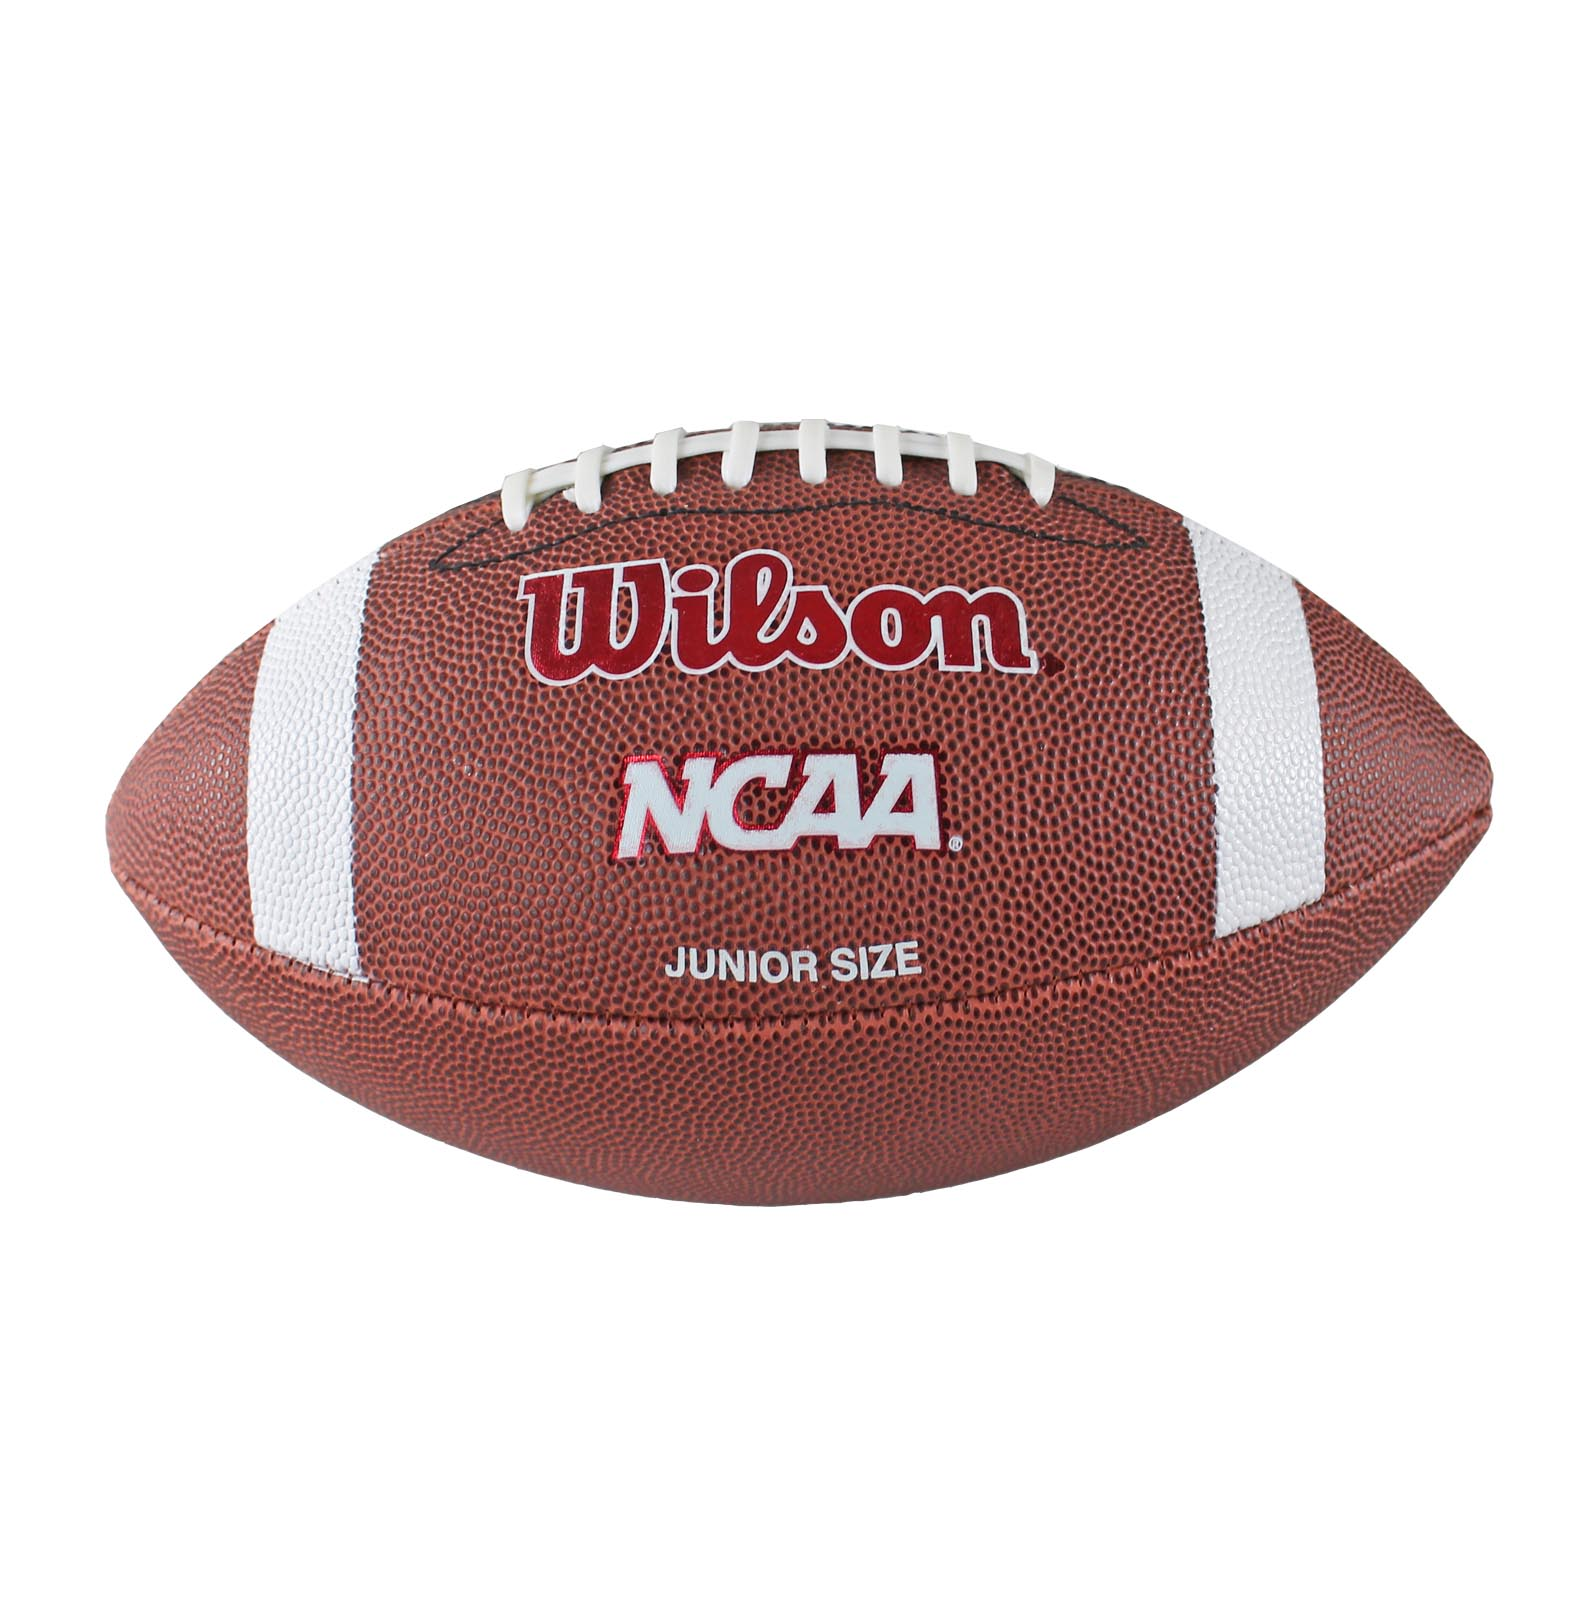 NEW WILSON NCAA Red Zone Junior Size Composite Leather Game Football | WTF1571ID